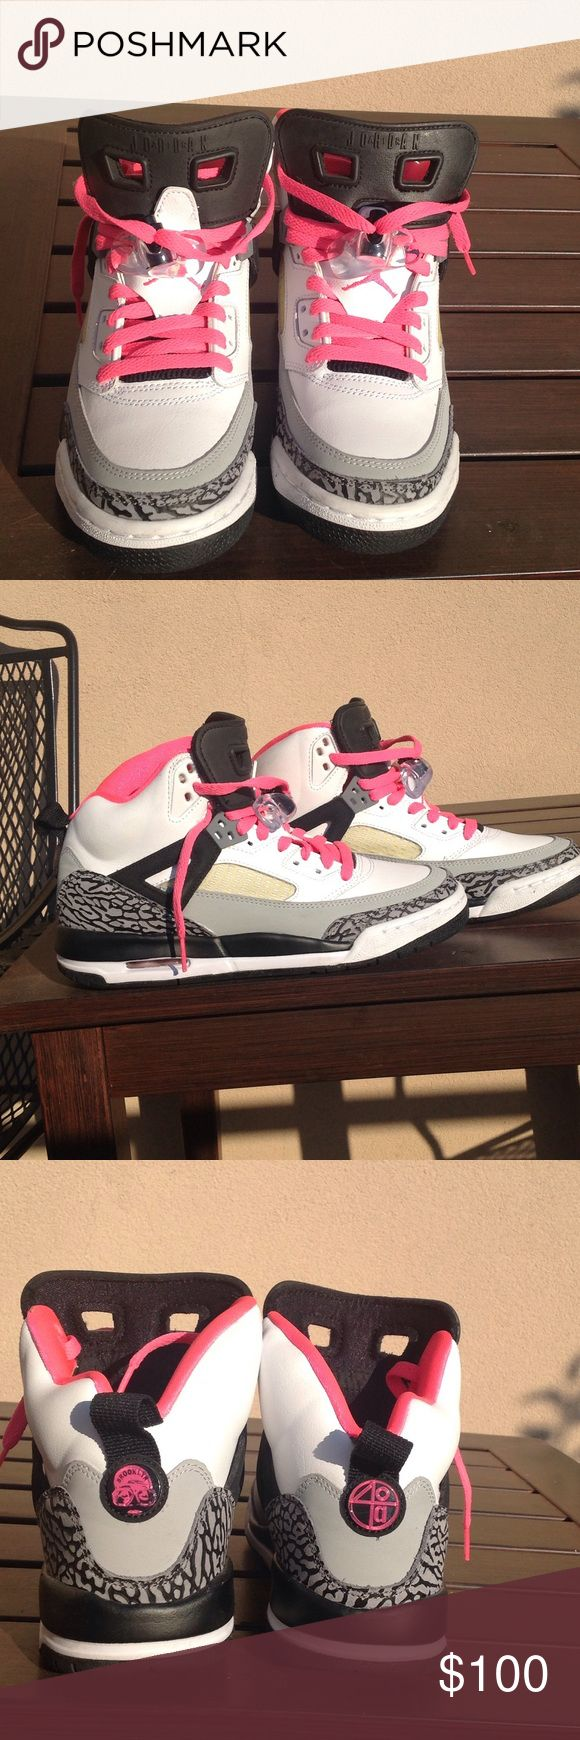 Nike Unisex Jordan Spizike White/Hyper Pink/Black Youth 6Y Jordan Spizike's worn twice. In excellent condition. No scuff marks. Comes with clear lace locks. Nike Shoes Sneakers